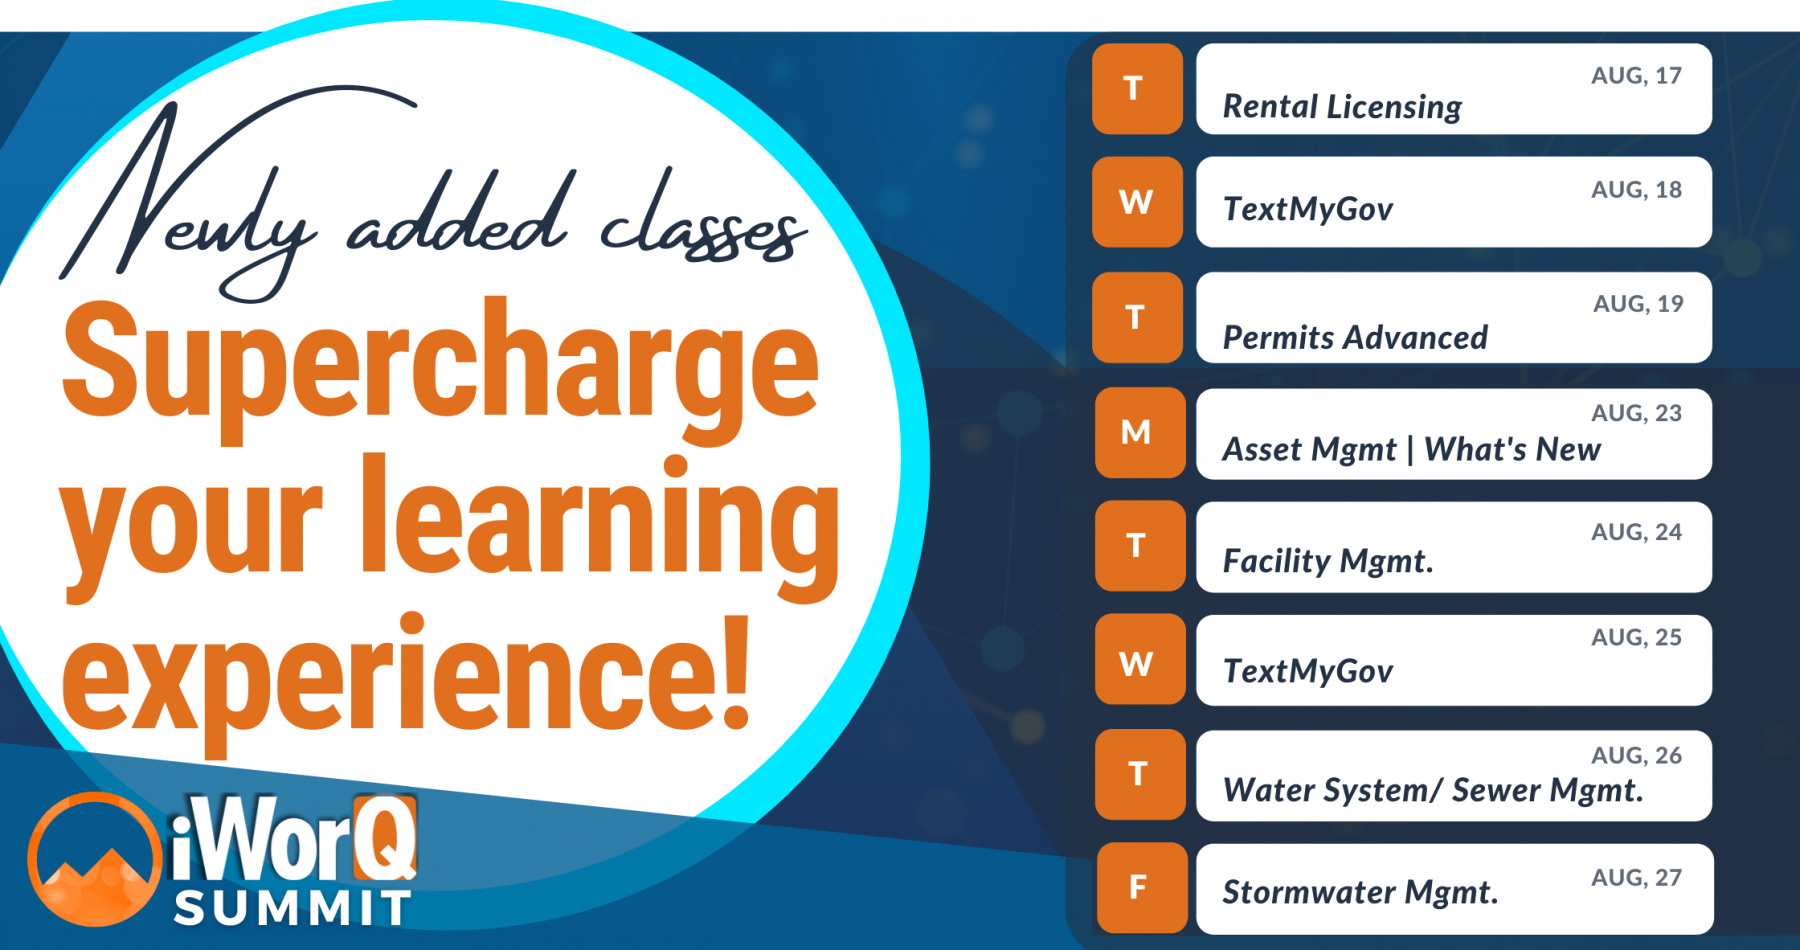 Newly added bonus classes to supercharge your learning experiance